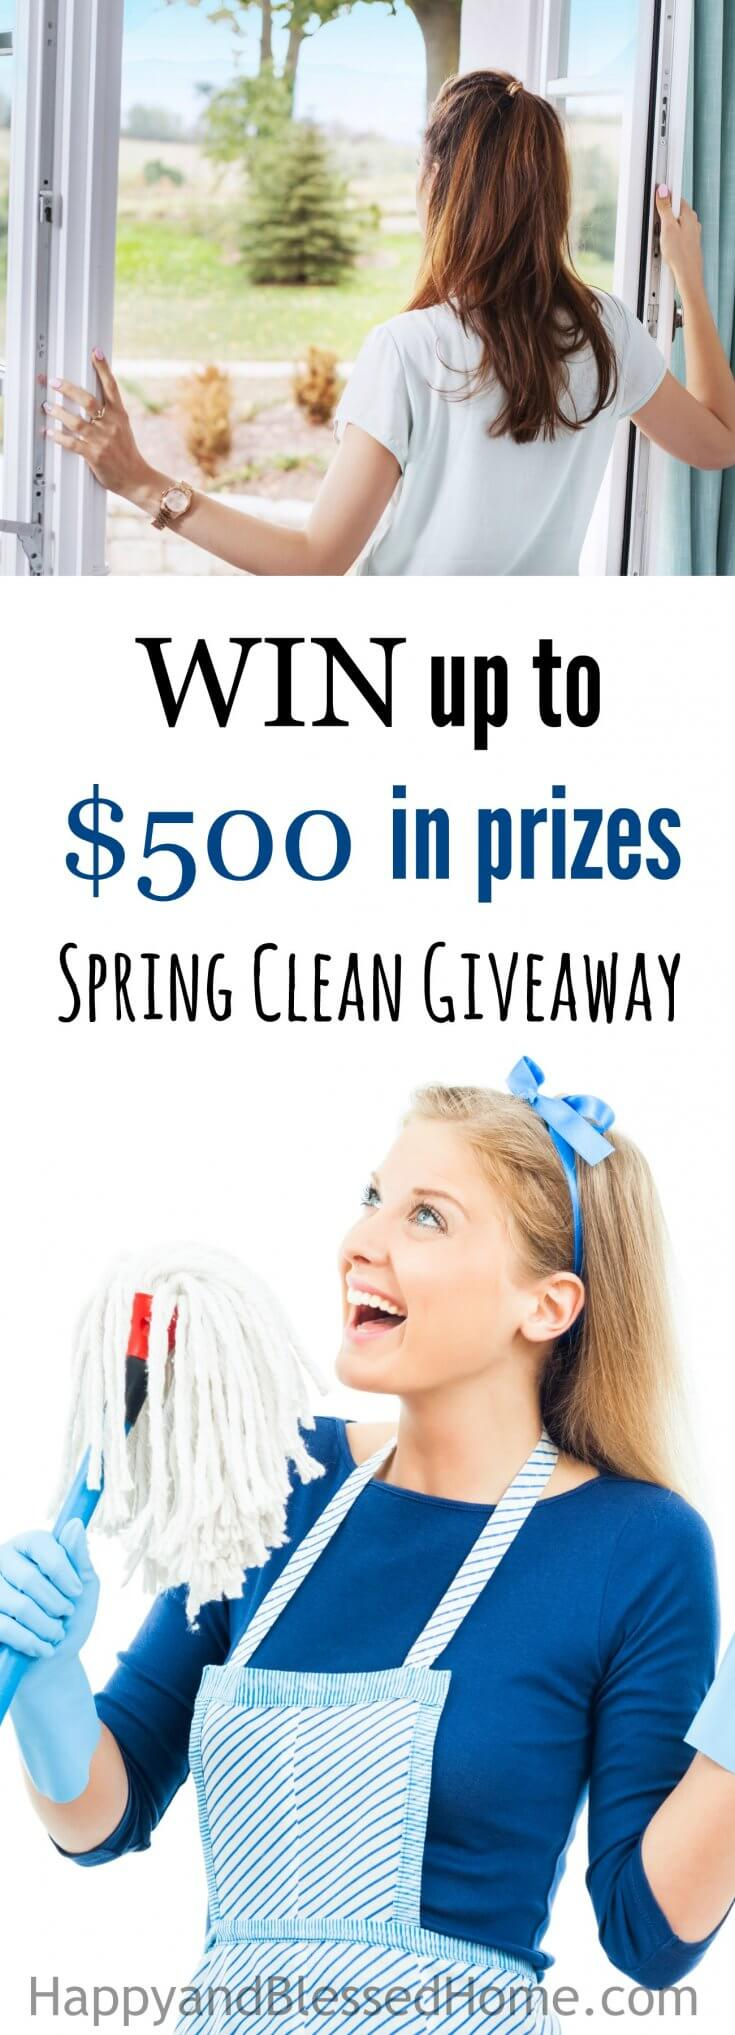 Spring Cleaning Giveaway - ends March 31 2018